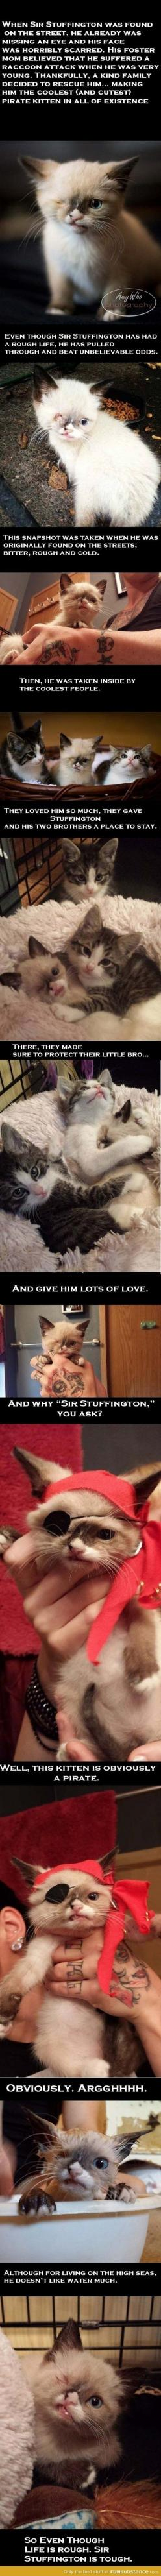 this is one of the sweetest little stories: Sweet Stories, Awwww He S, So Happy, Pirate Kitten, Beautiful Creatures, Animal